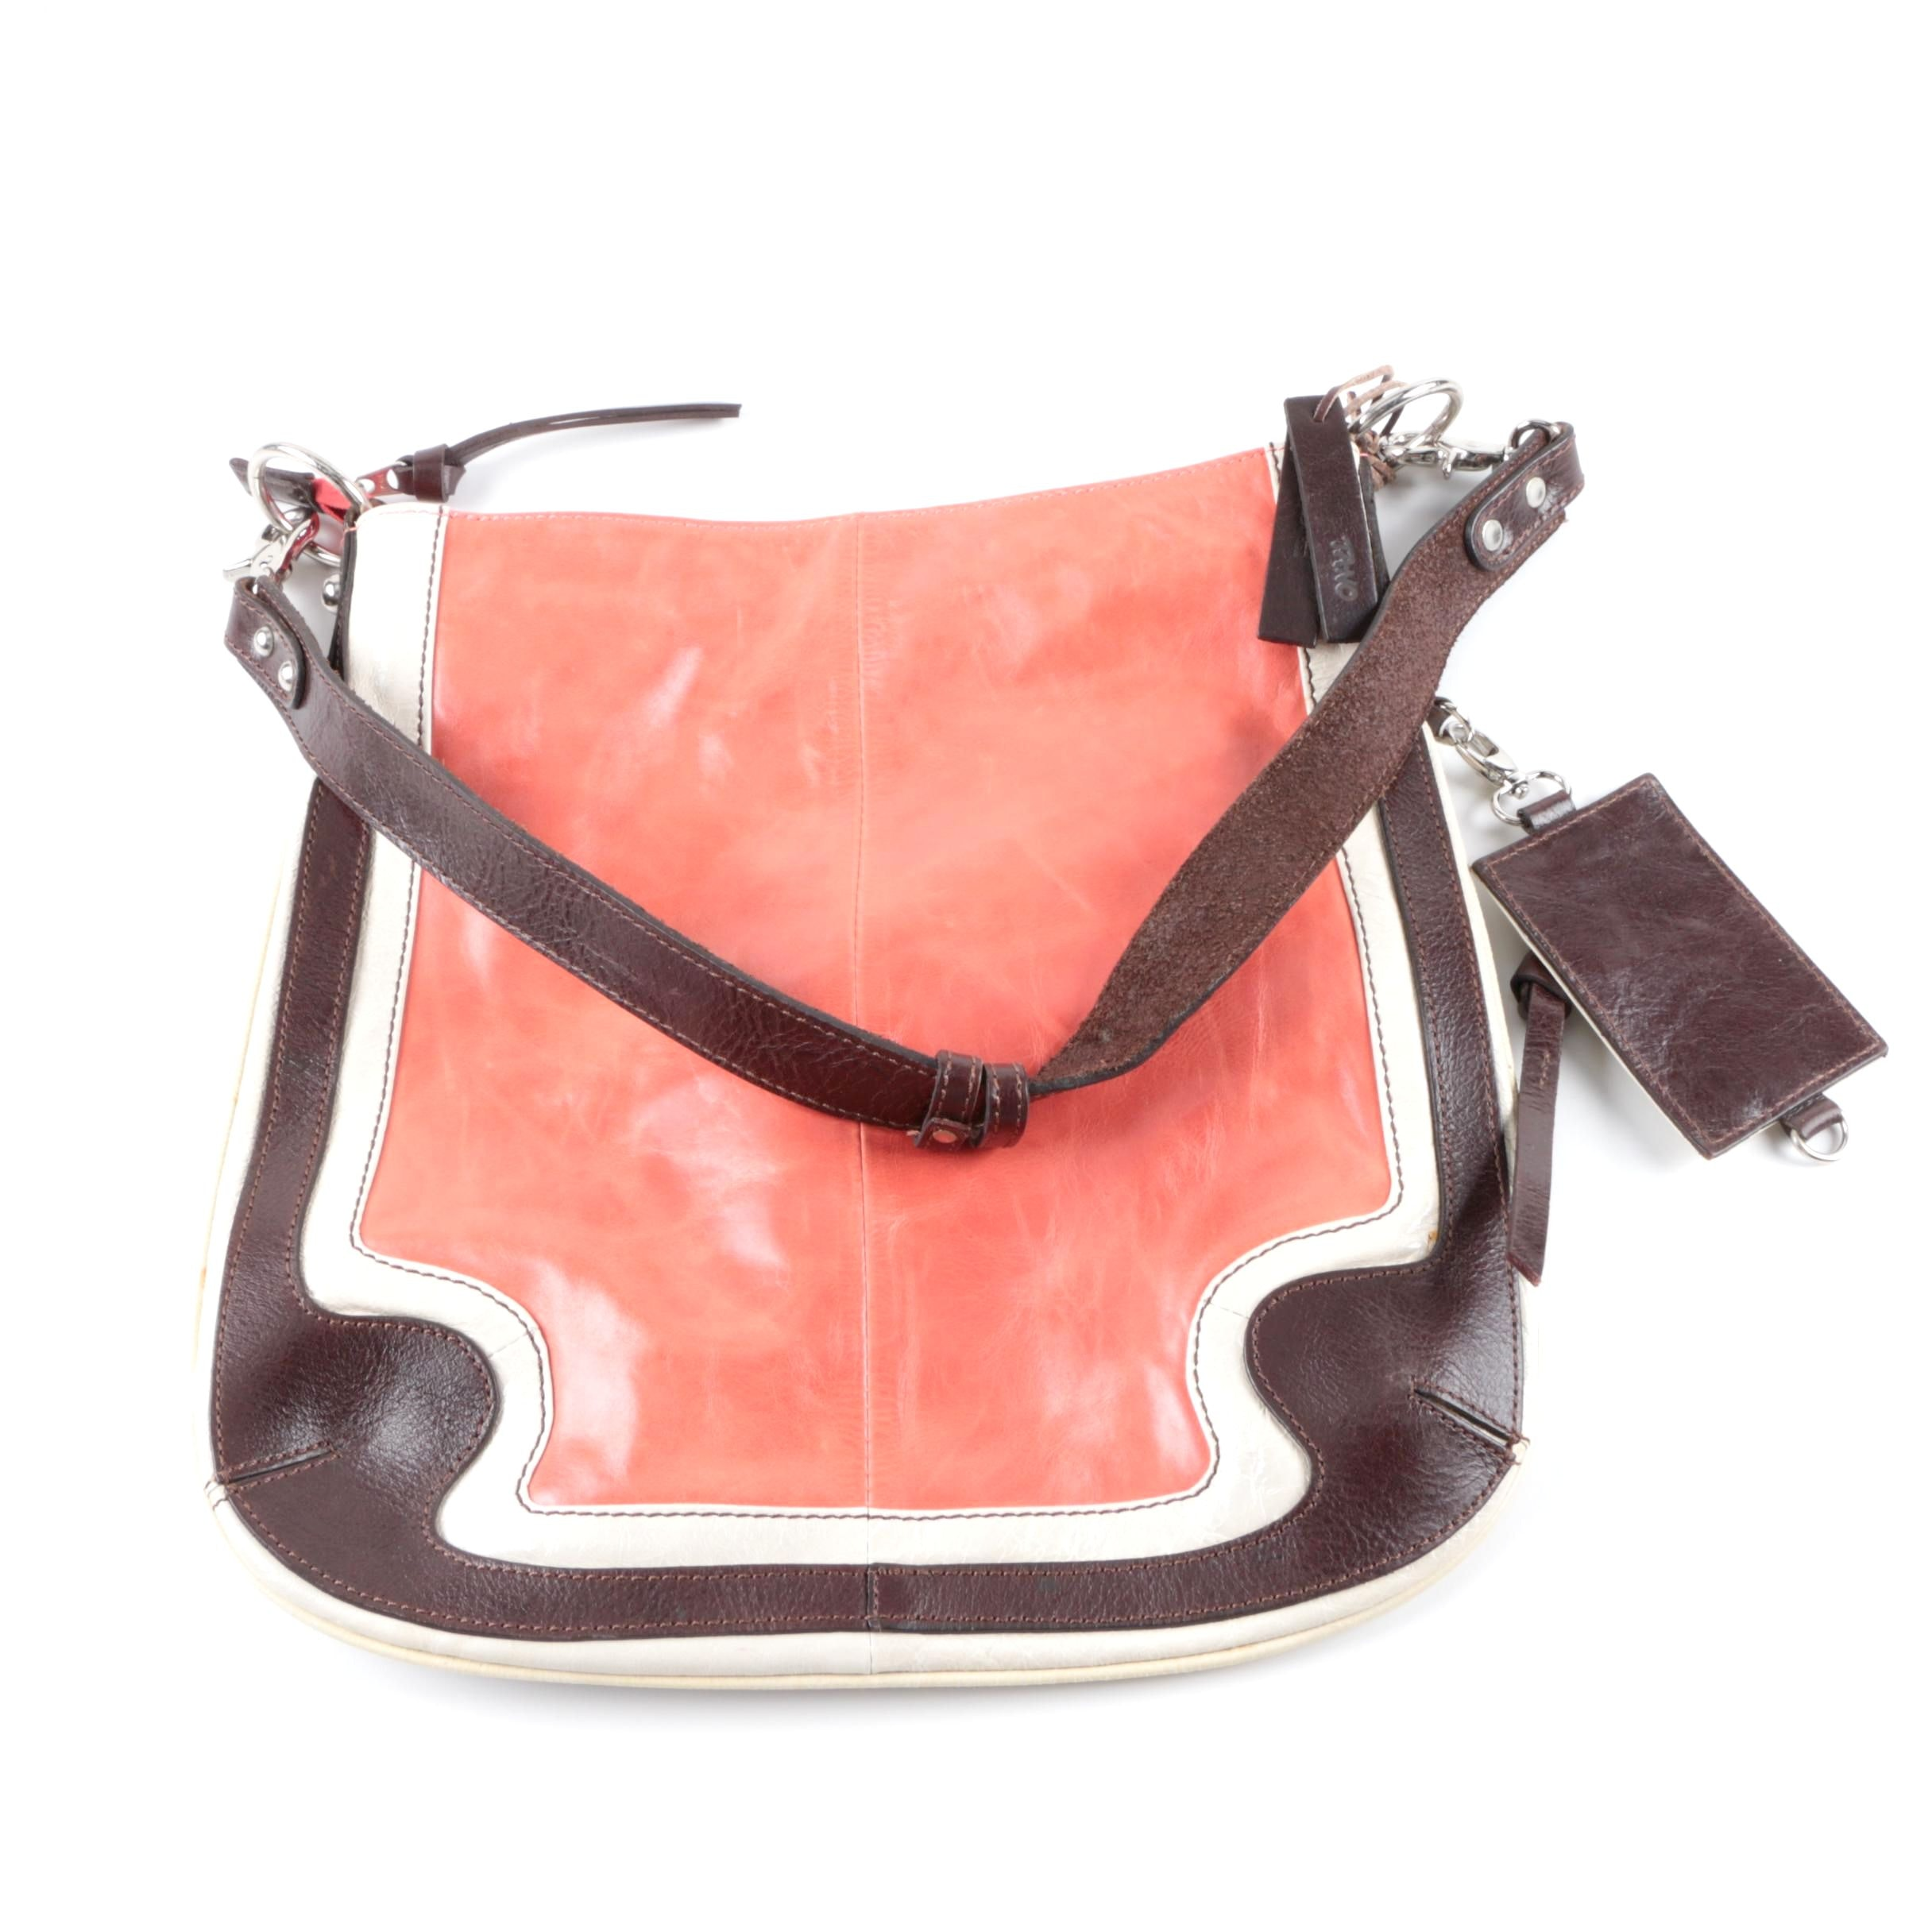 Tano Leather Shoulder Bag